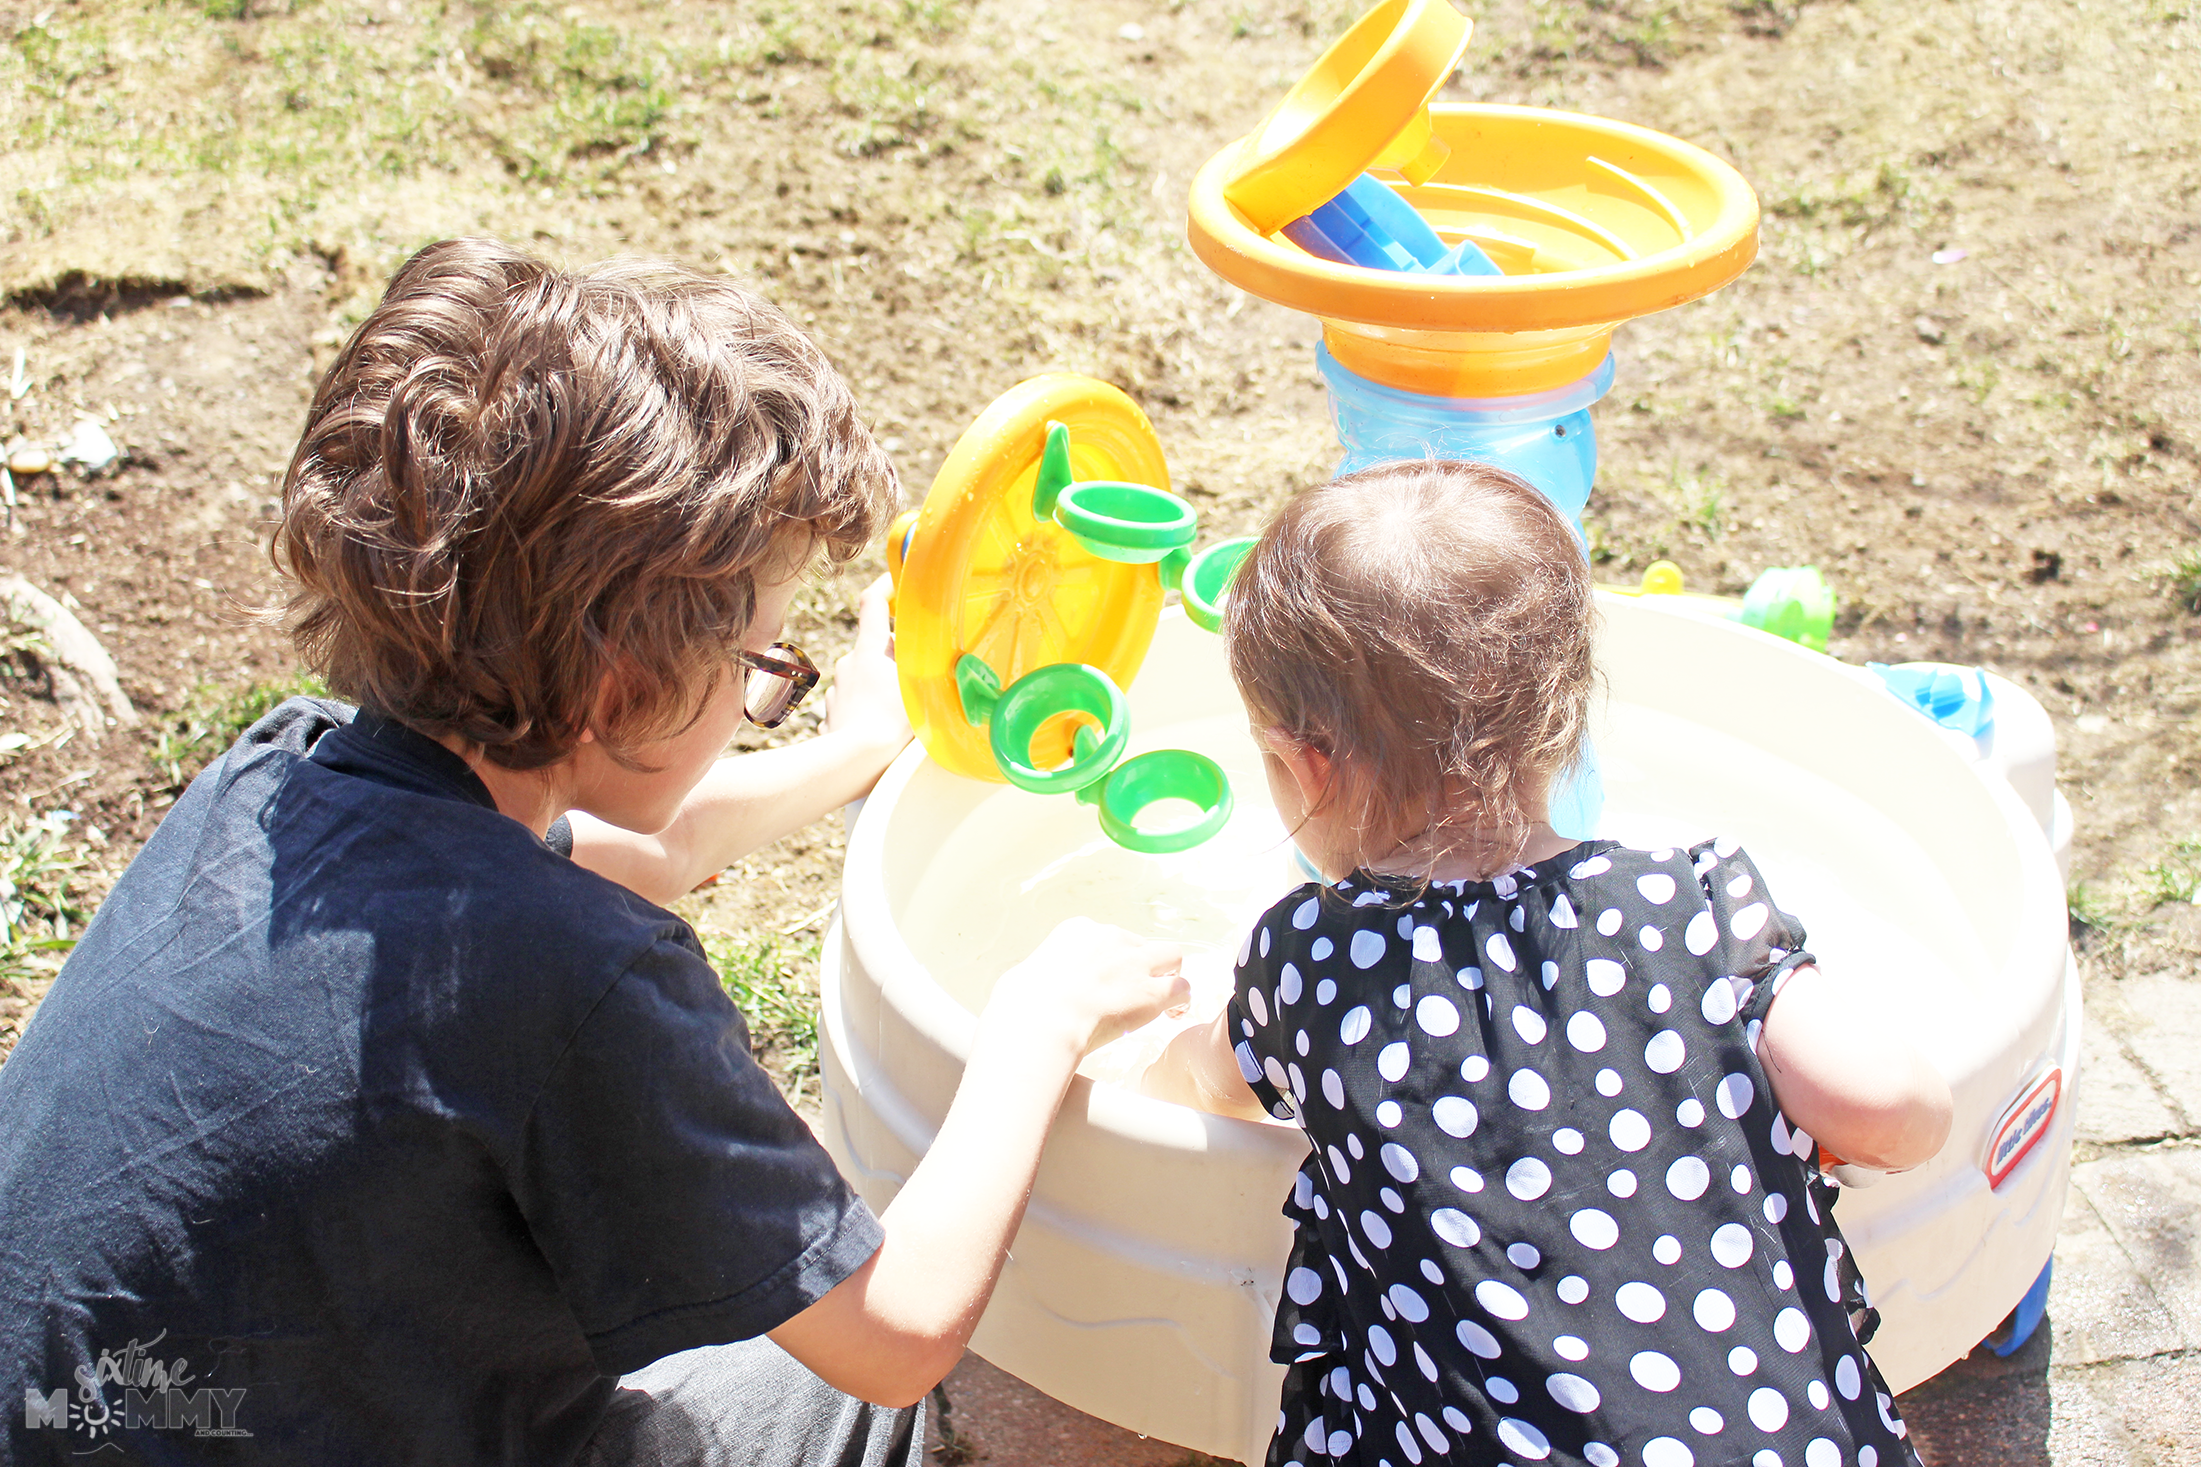 Fun Outdoor Activities For Kids That Toddlers Can Follow Along With During Spring & Summer